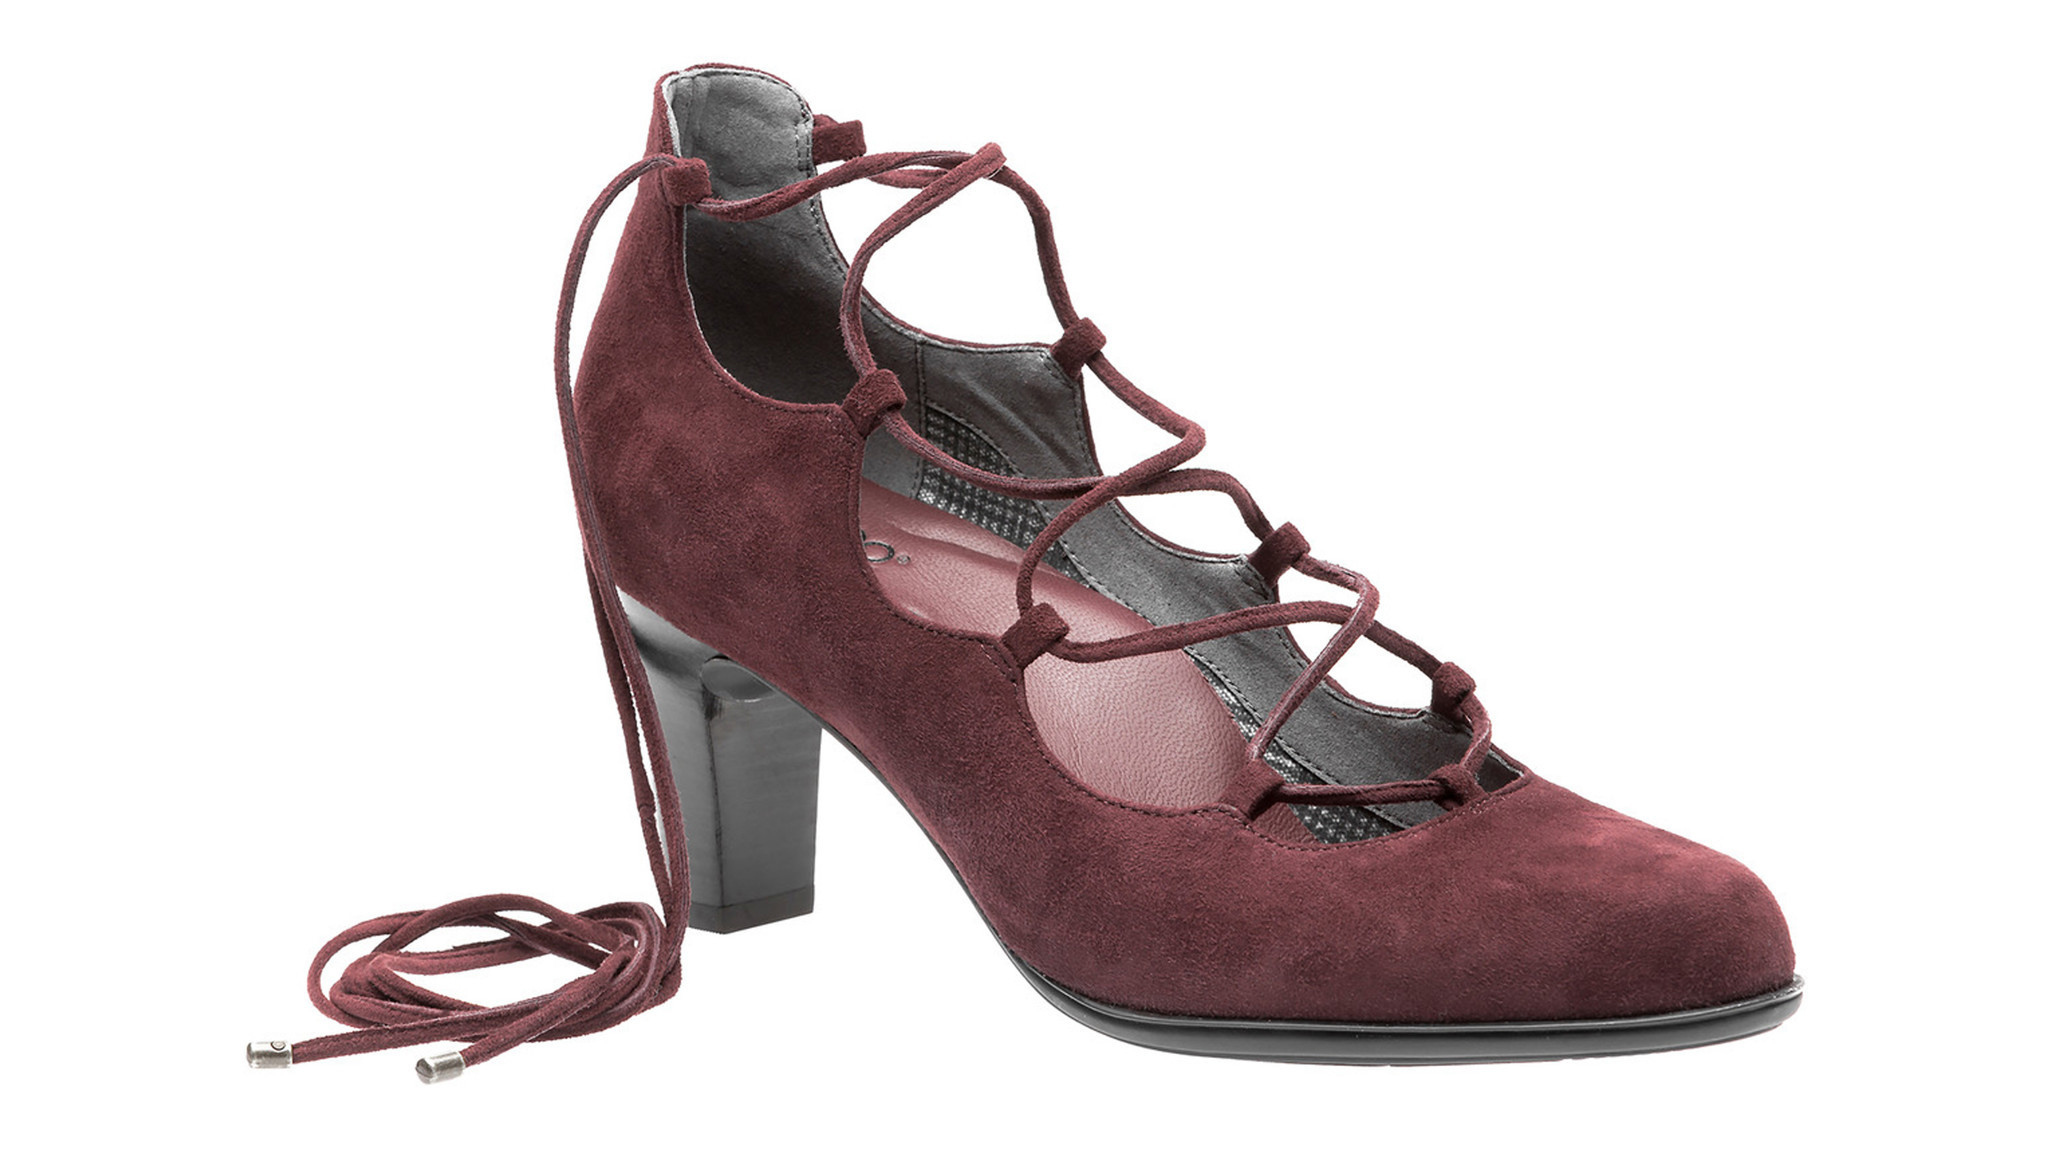 Footwear brand Abeo is known for its fashion-forward-yet-comfortable shoes. The Virtue is in burgundy, considered one of fall's most dominant colors, and features on-trend lace-up details.